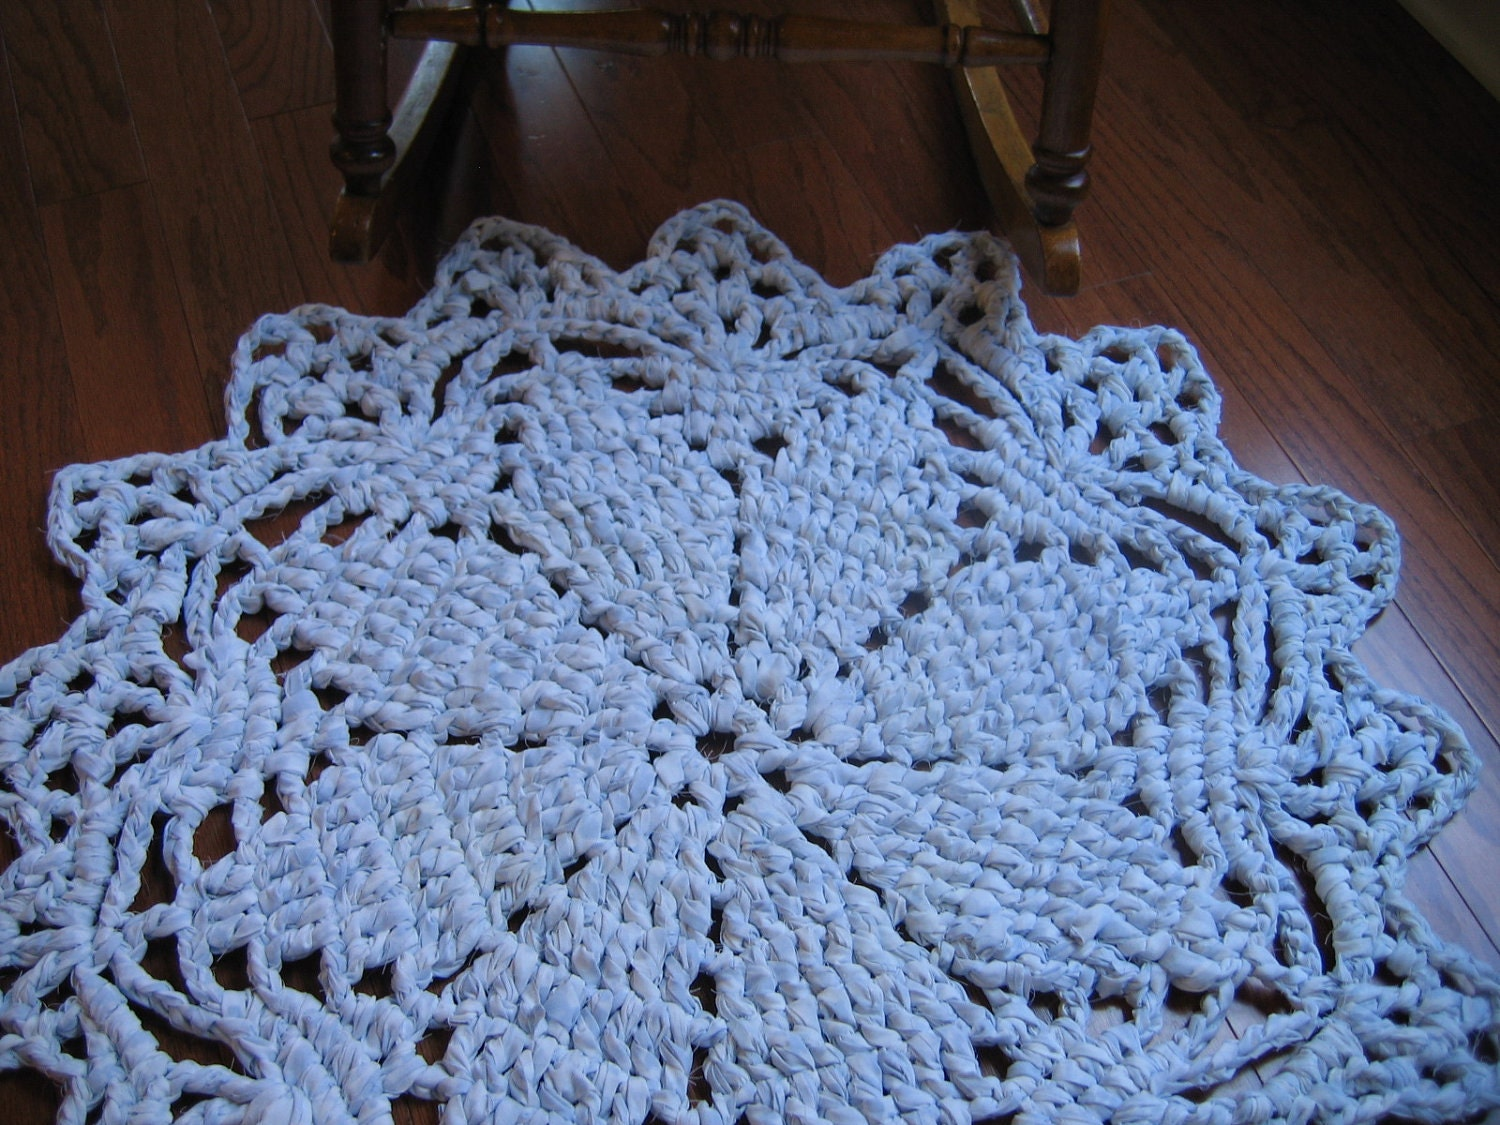 Rag Crochet Doily Rug Pattern By RaggedyAnns On Etsy